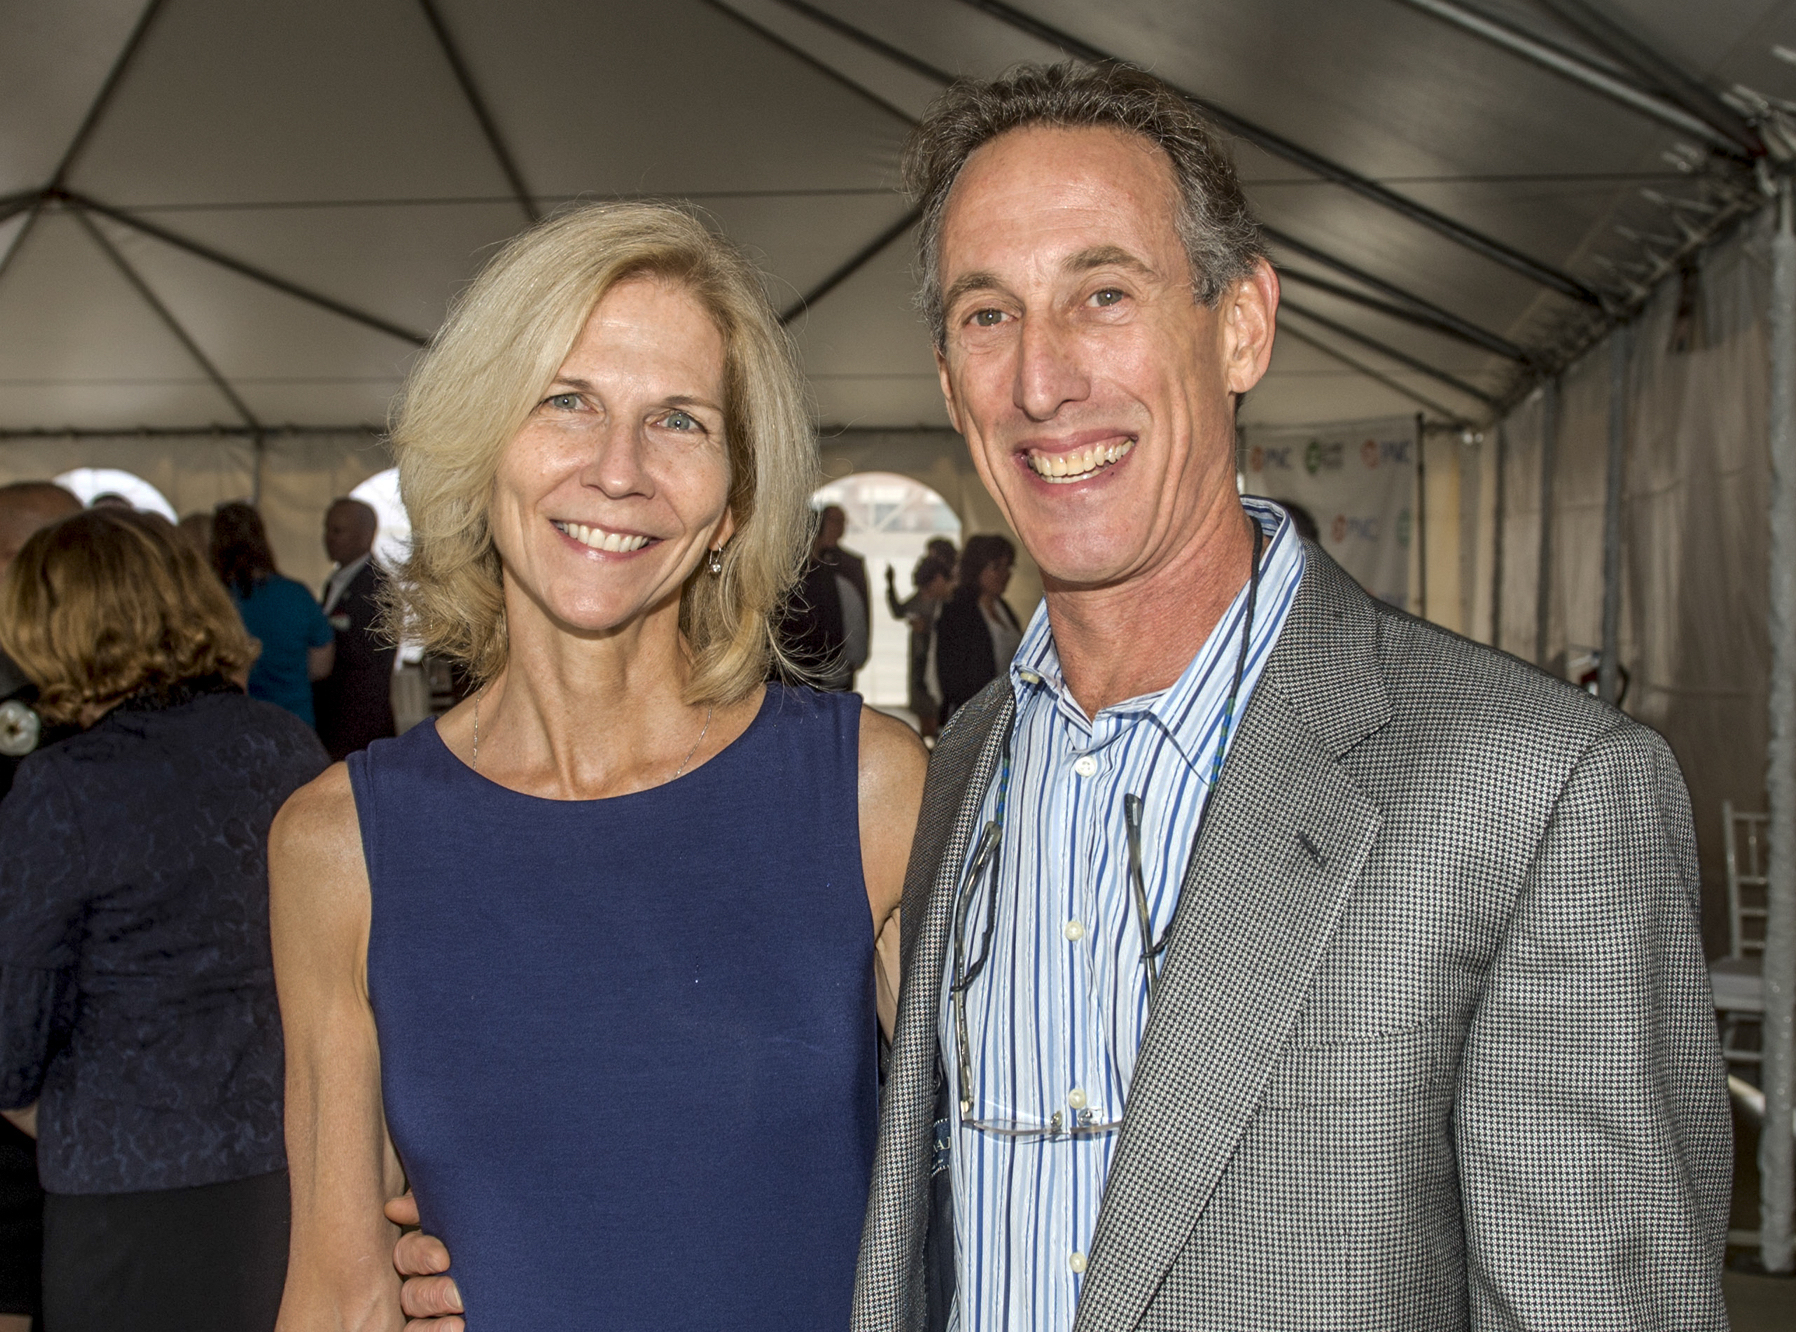 Larry Eger and his wife, Susan Burns, are just two of the slew of movers and shakers who have called the downtown YMCA home.